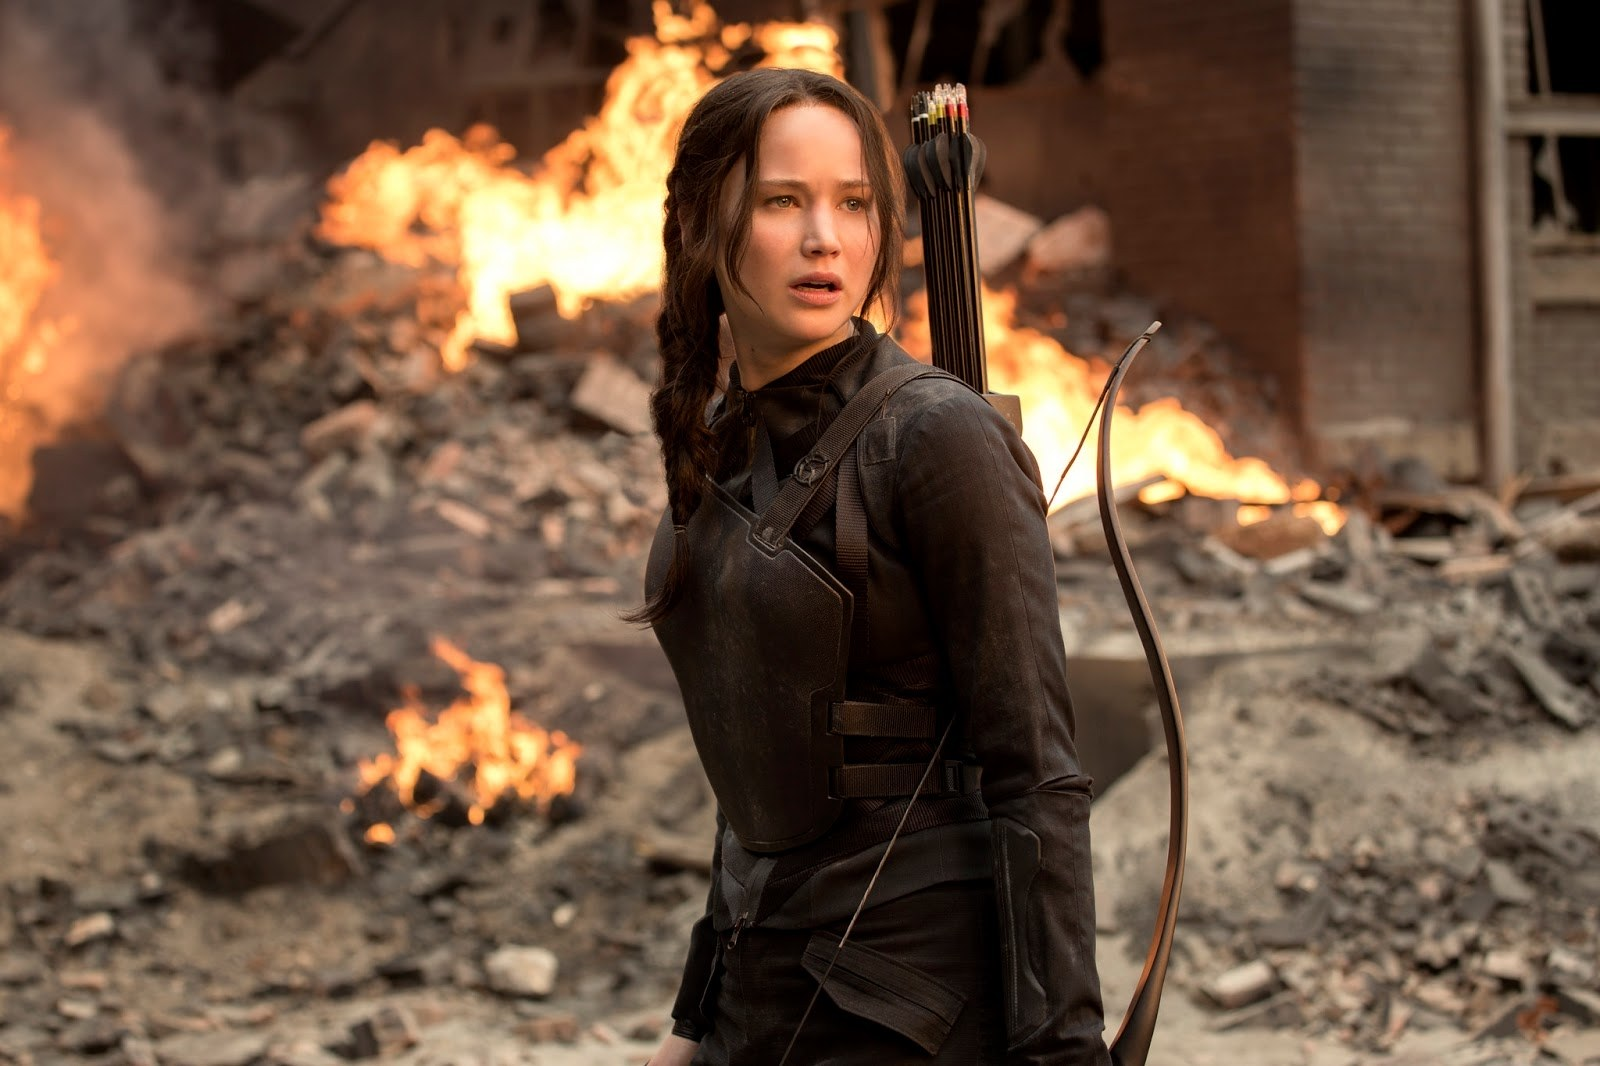 Hunger Games prequel novel officially announced for 2020, movie in the works